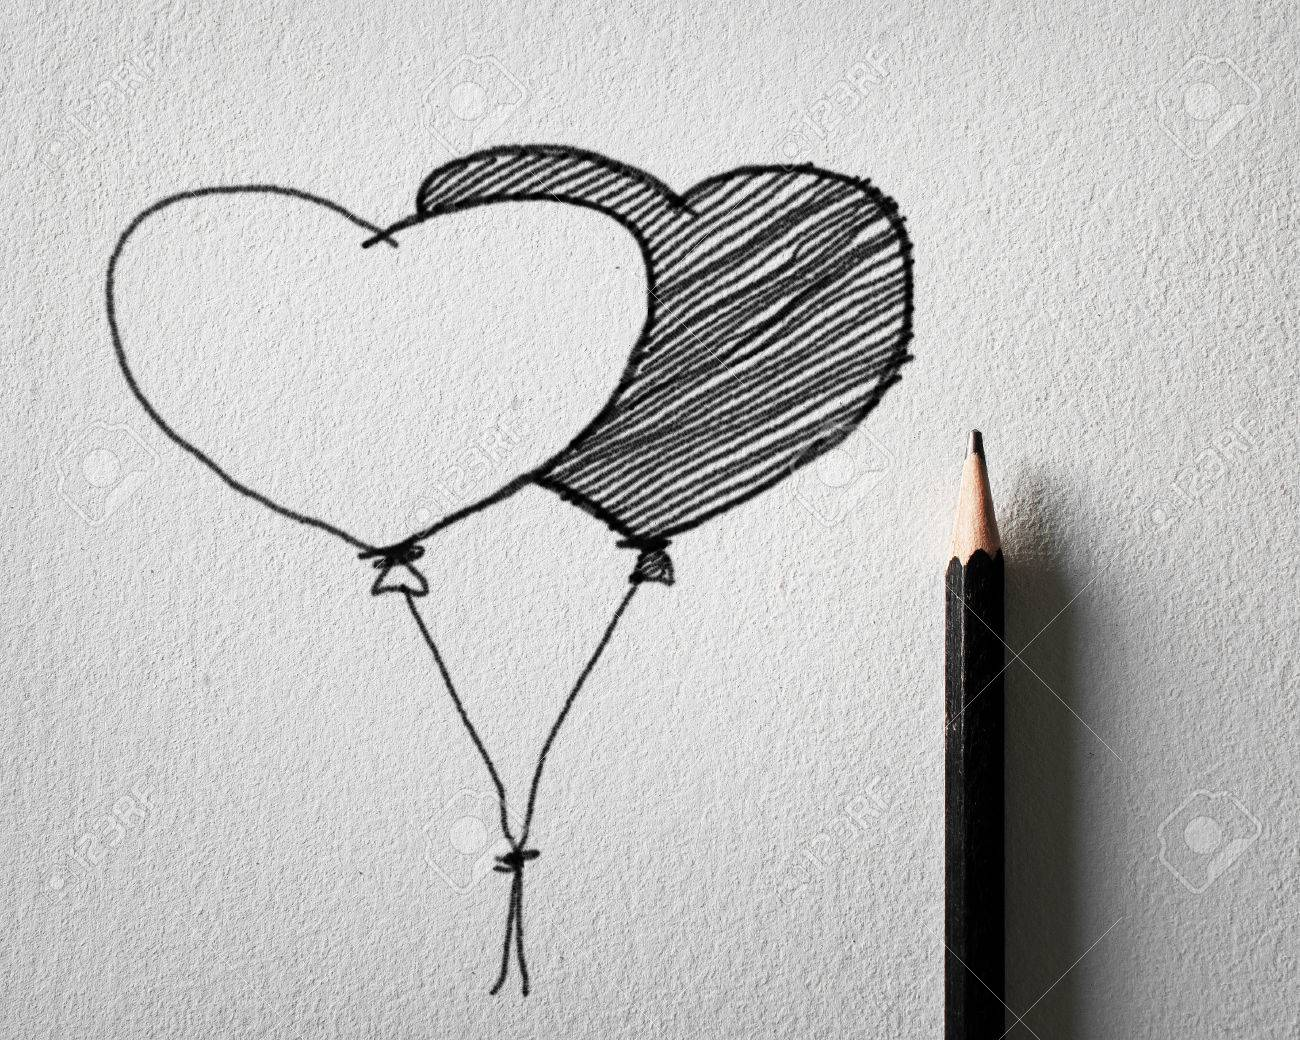 Pencil sketching for heart balloon concept on white paper stock photo 23468644